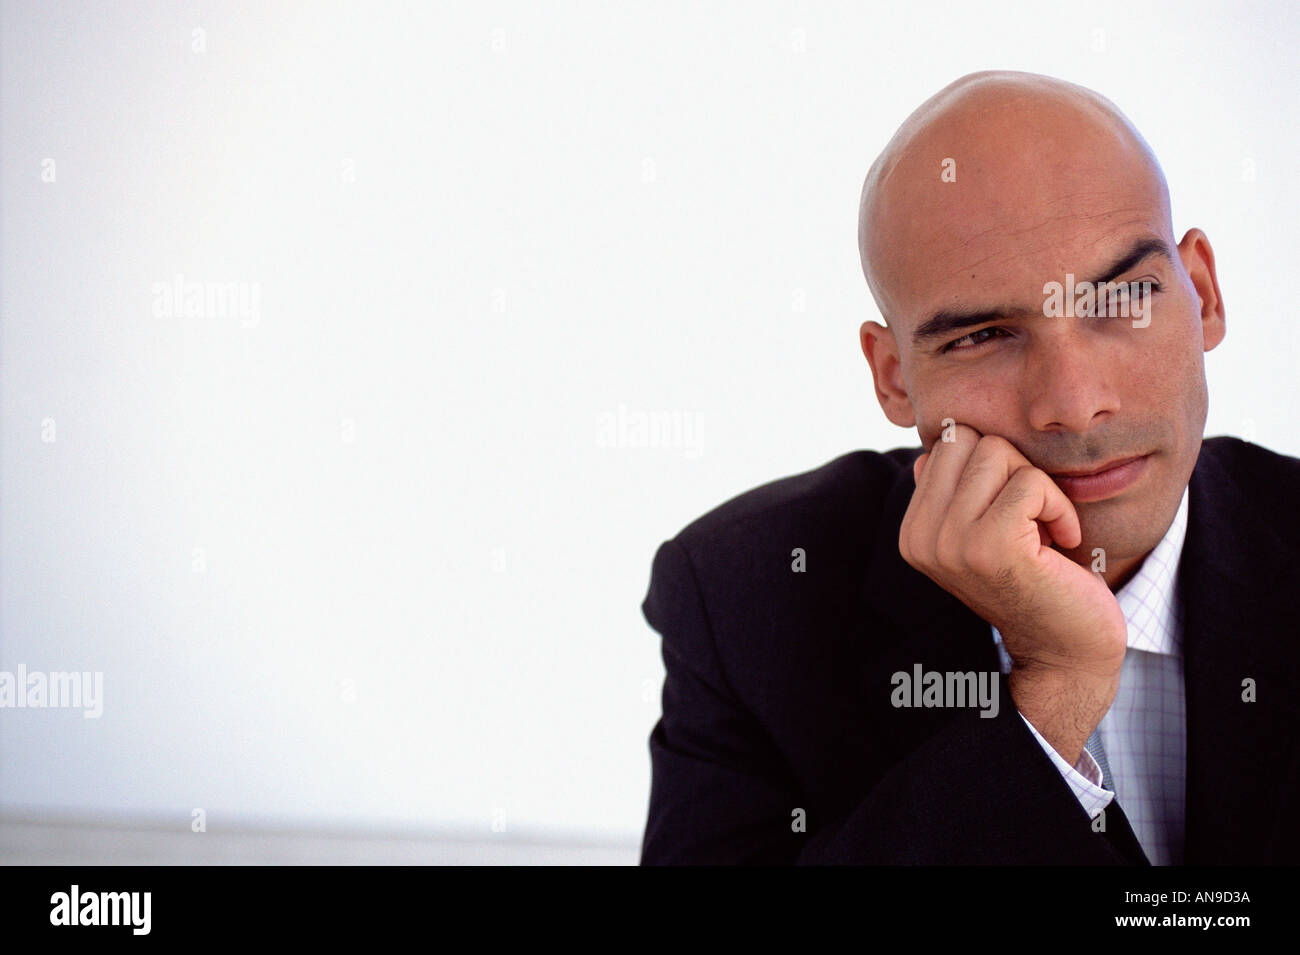 Businessman deep in thought - Stock Image